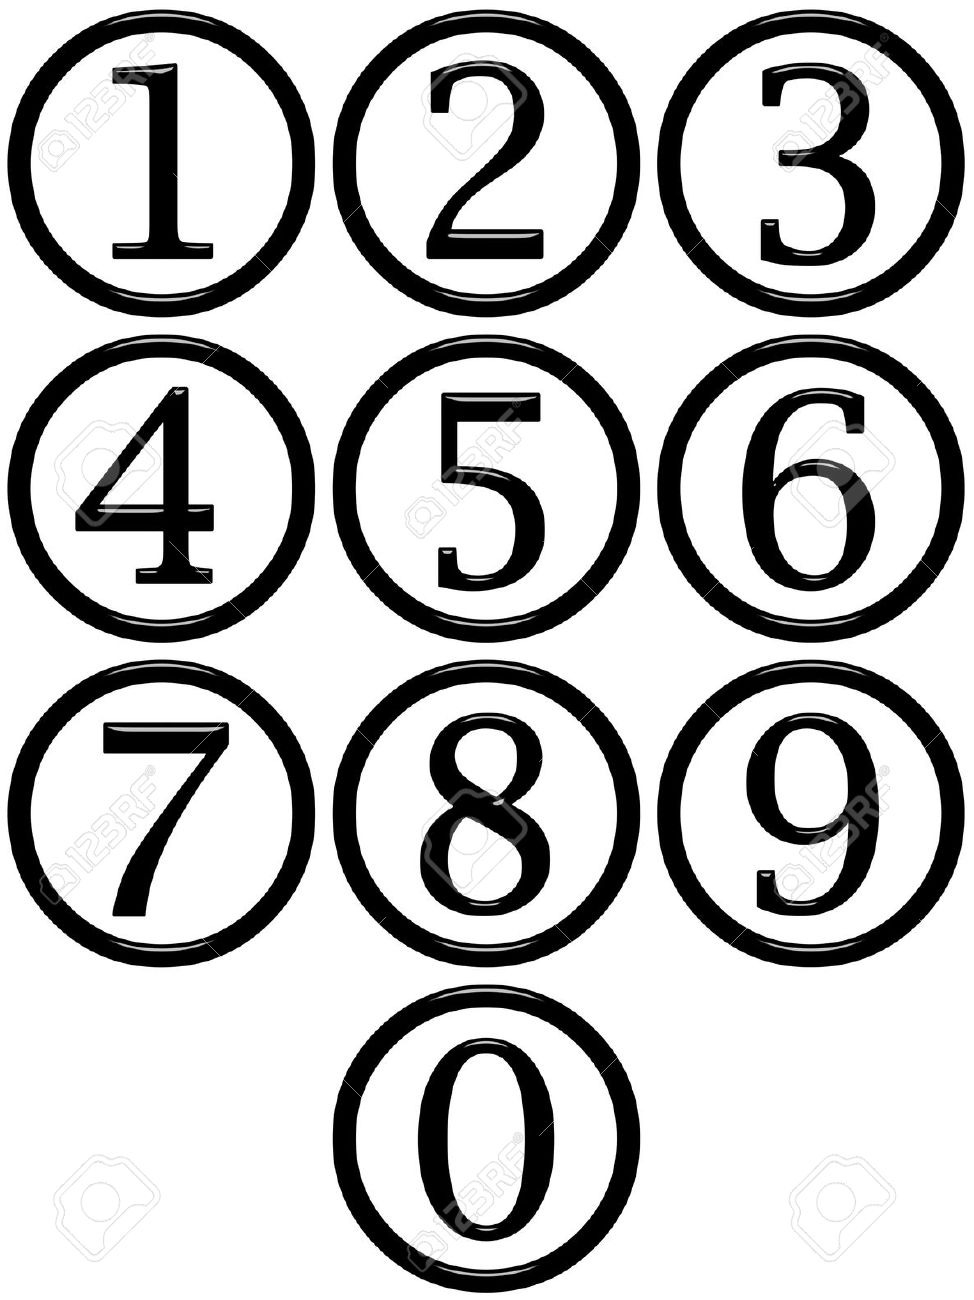 Numbers clipart black and white. Number clip art panda